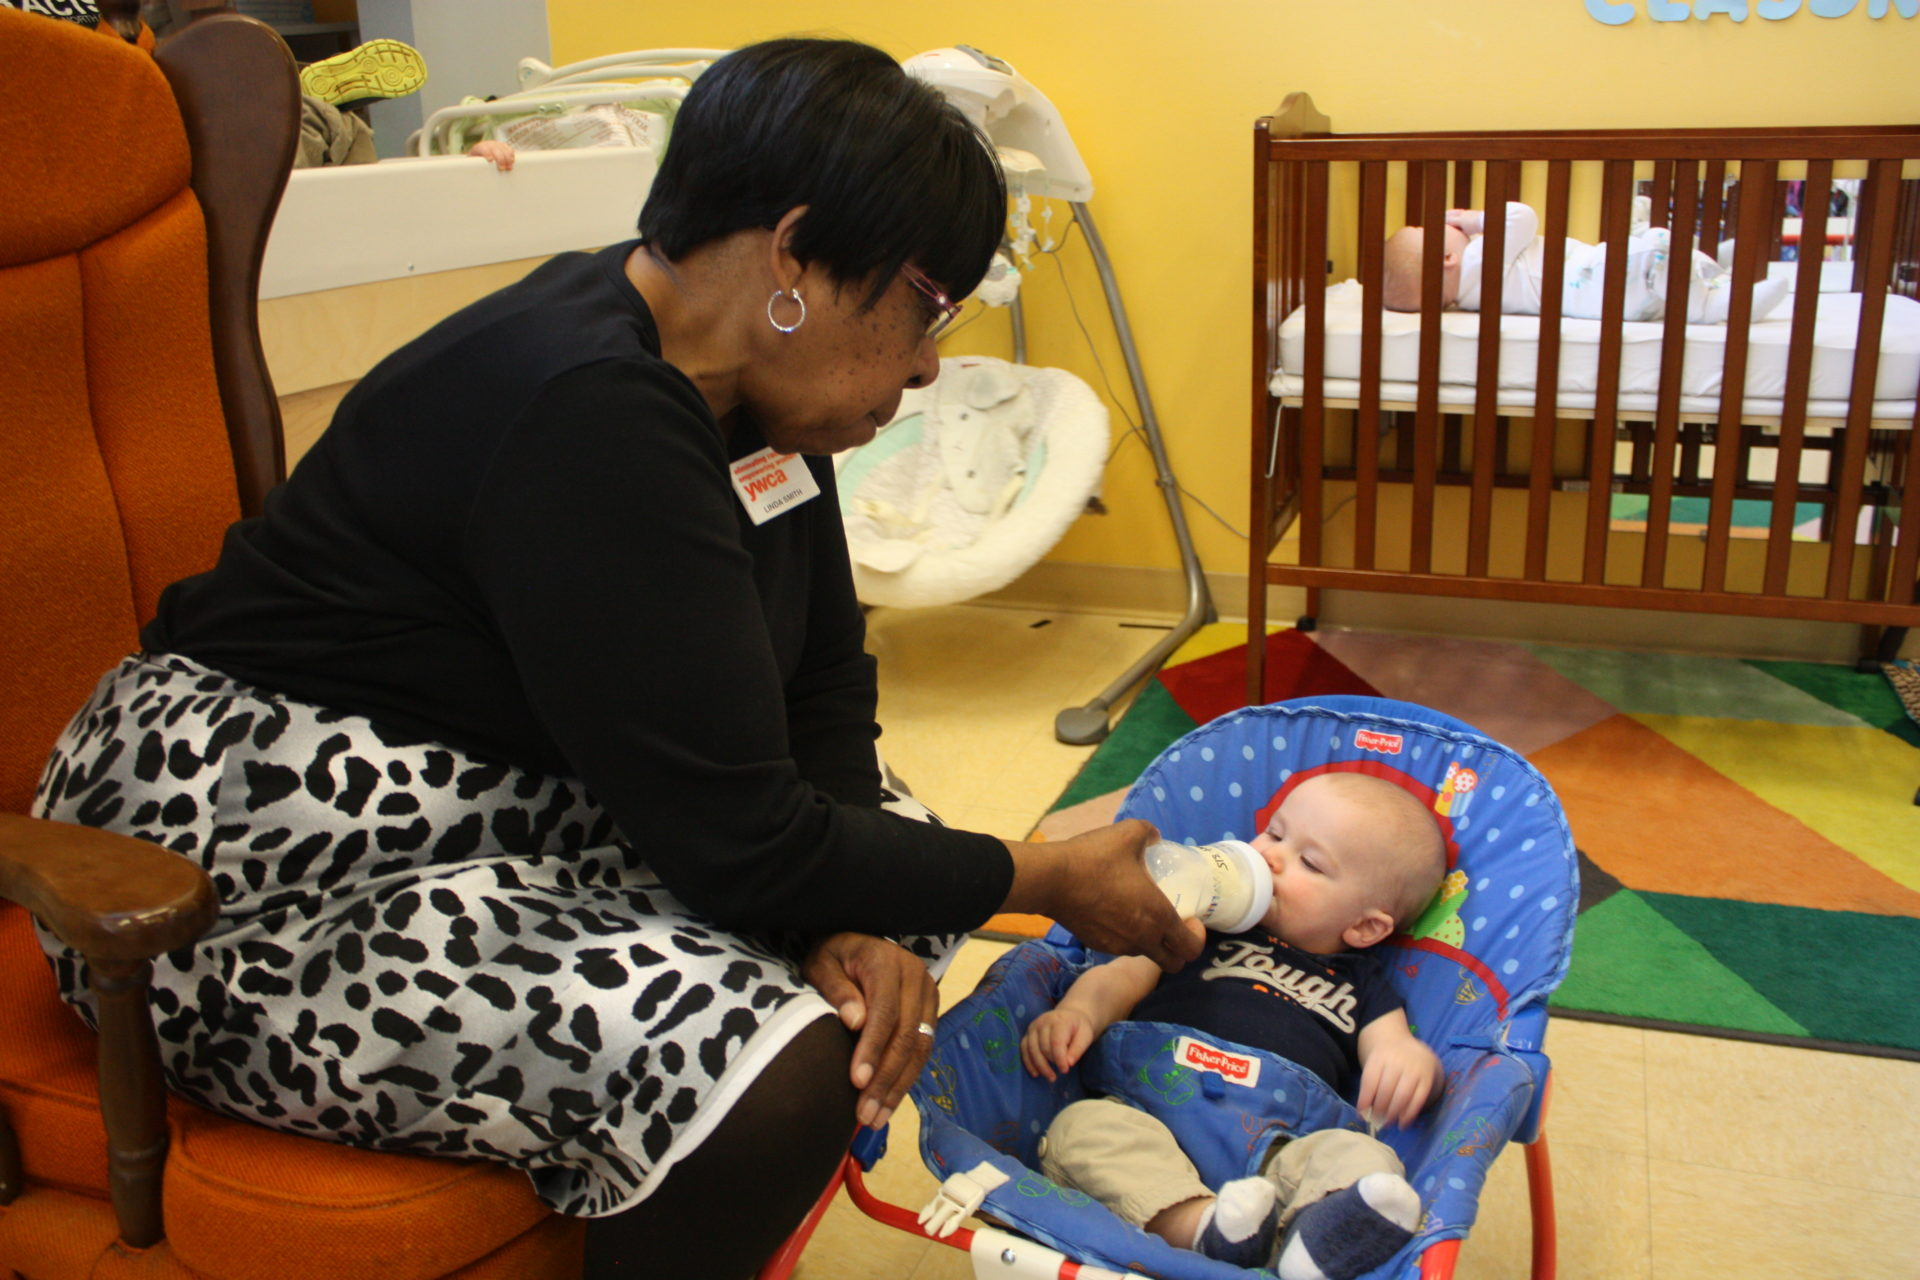 Empowerment childcare offers free childcare for parents in transition